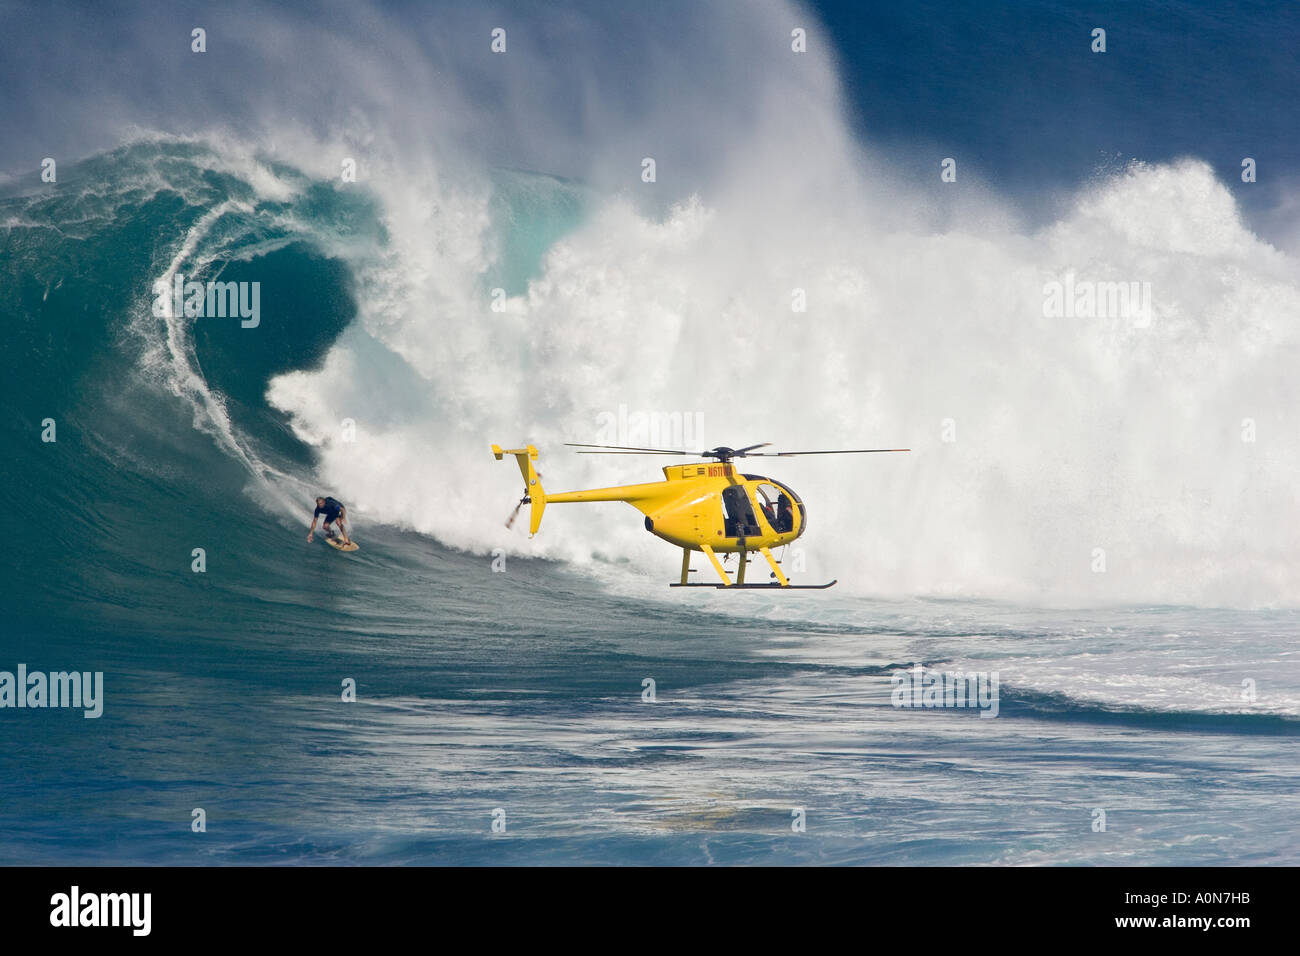 a helicopter filming tow in surfer laird hamilton at peahi jaws off